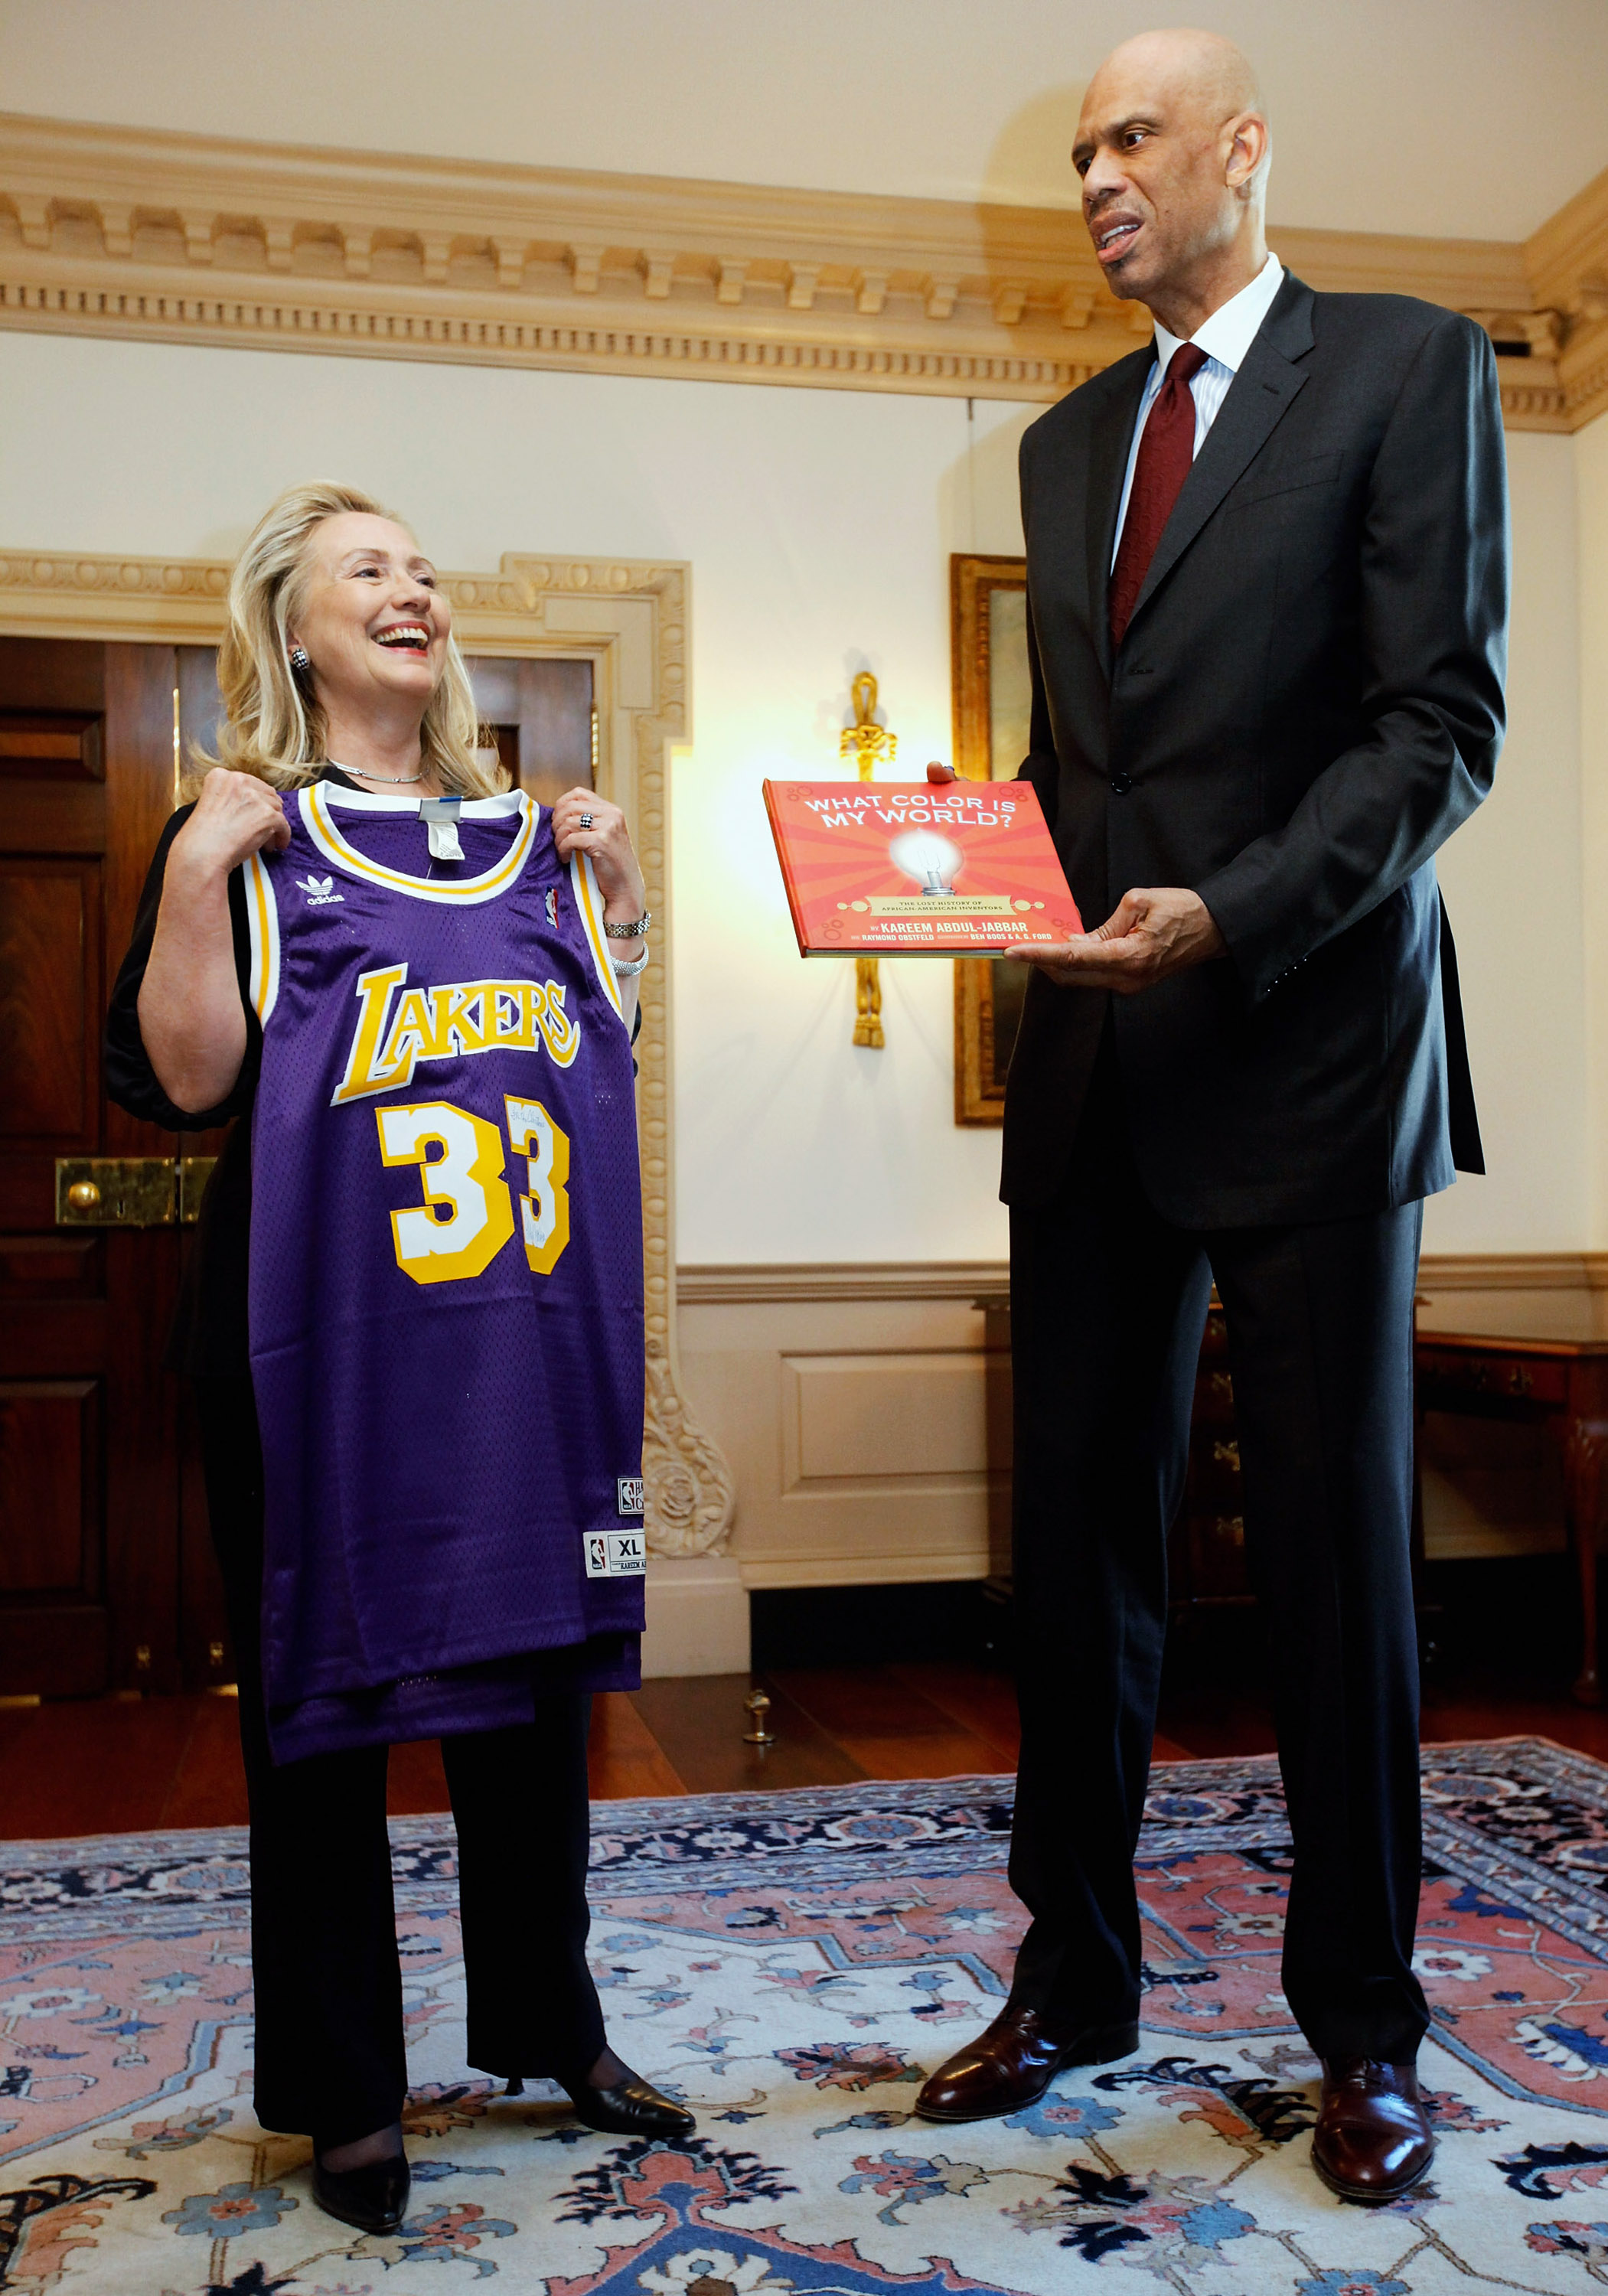 After Whining About It, Kareem Abdul-Jabbar Will Get A Statue A…